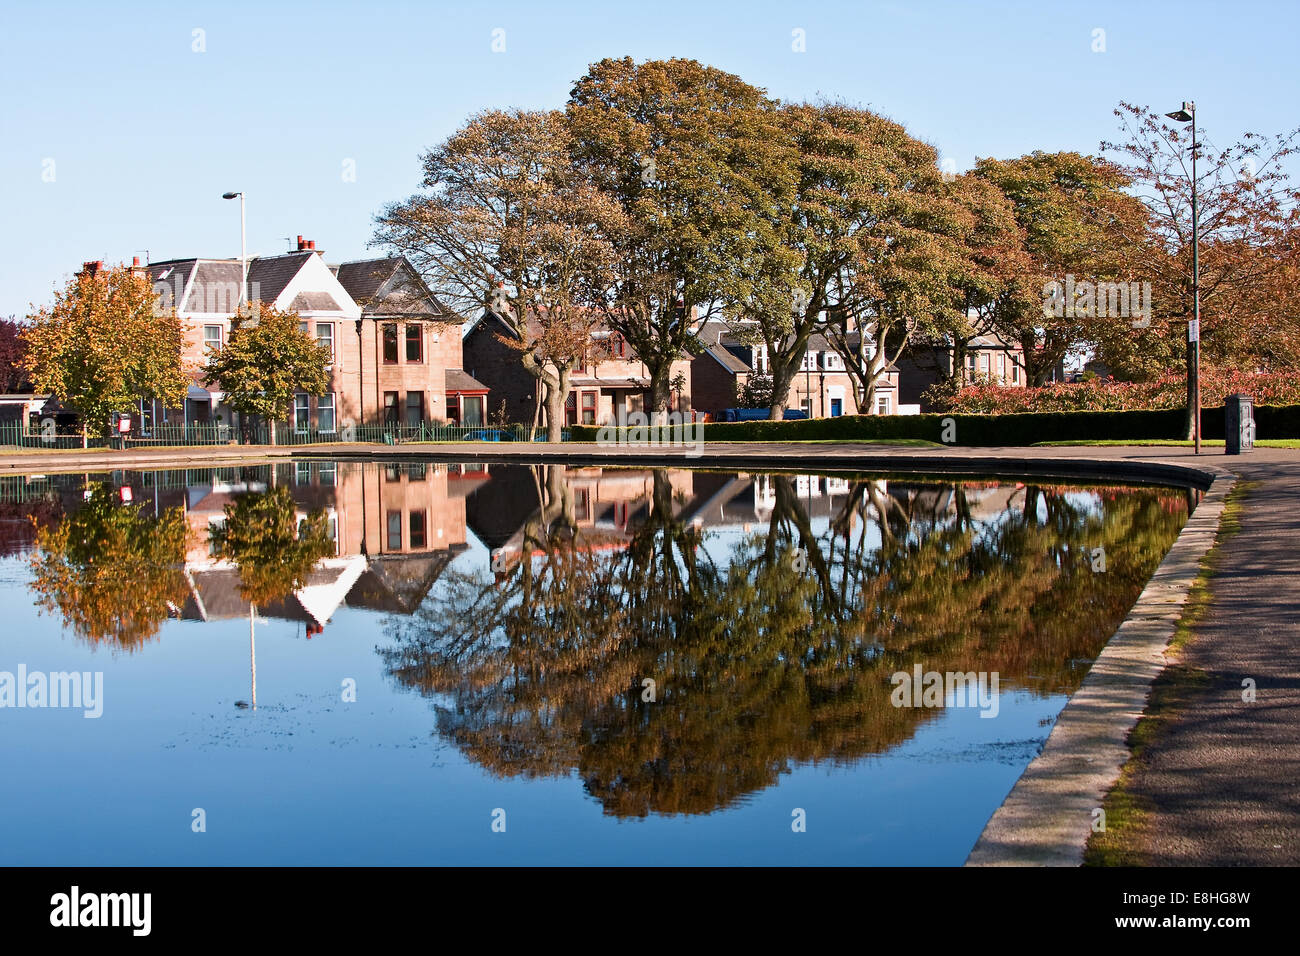 Crisp and clear colourful Autumn reflections on the calm waters of Stobsmuir Ponds in Dundee, UK Stock Photo